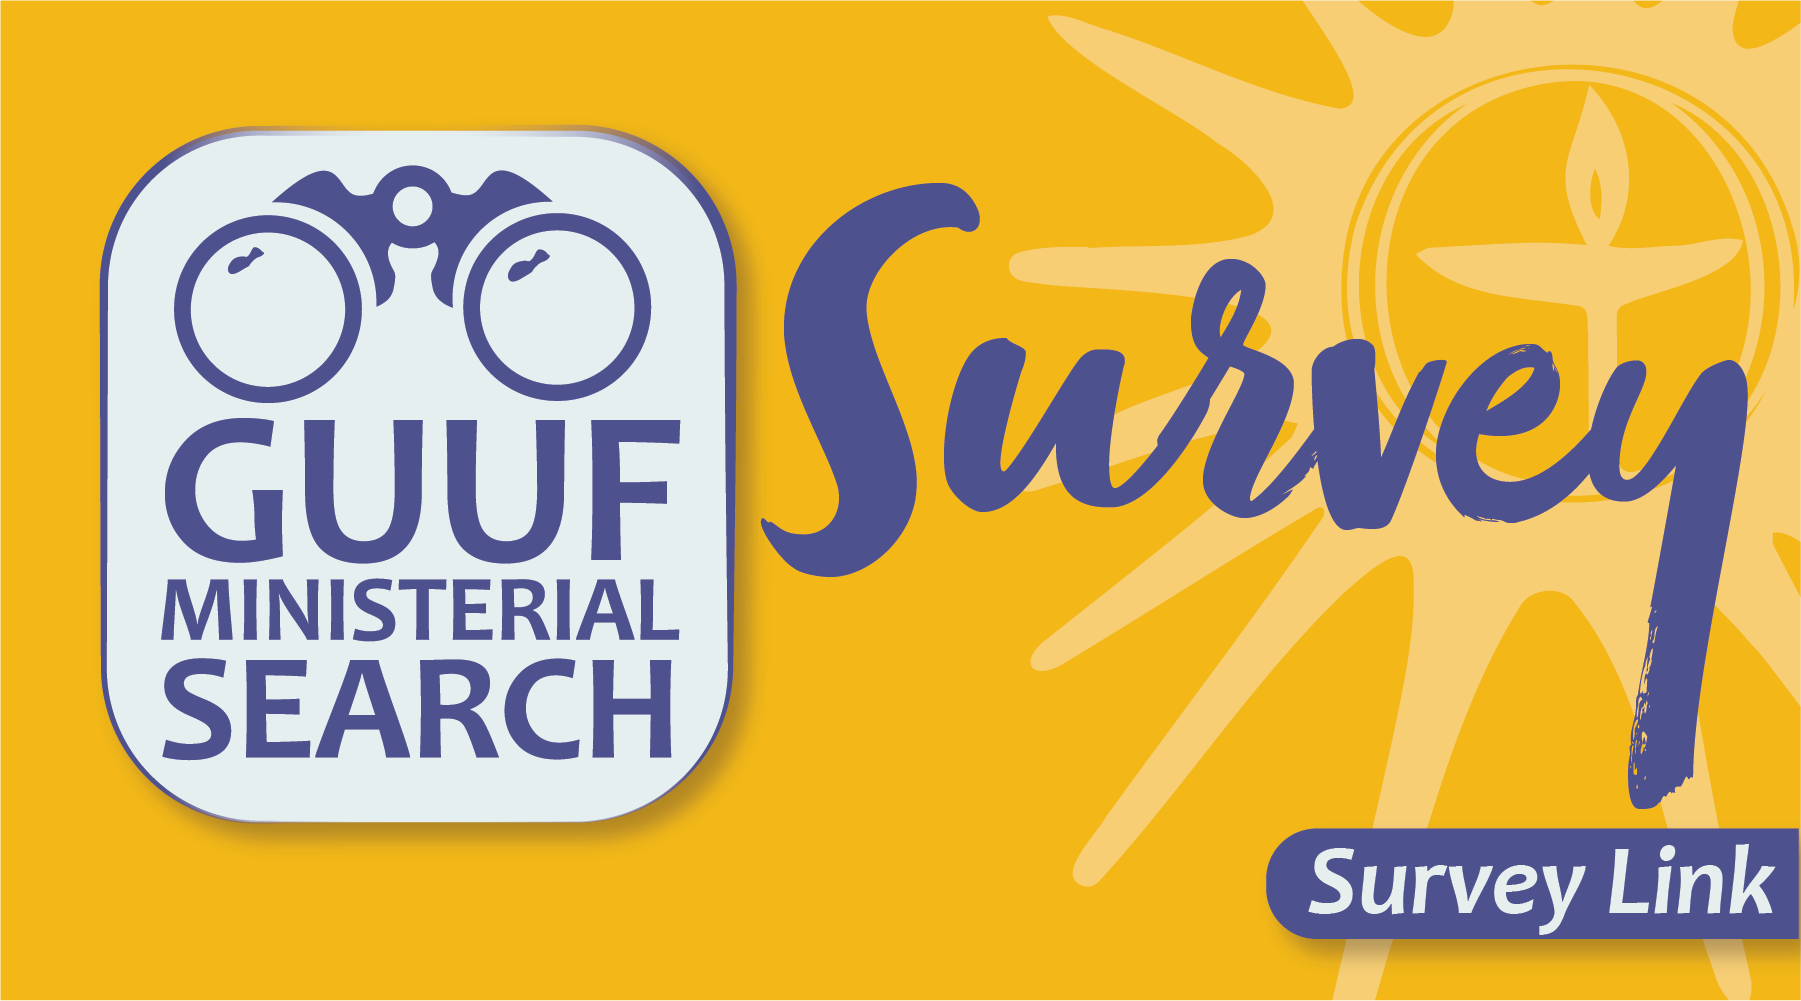 Congregational Ministerial Search Survey